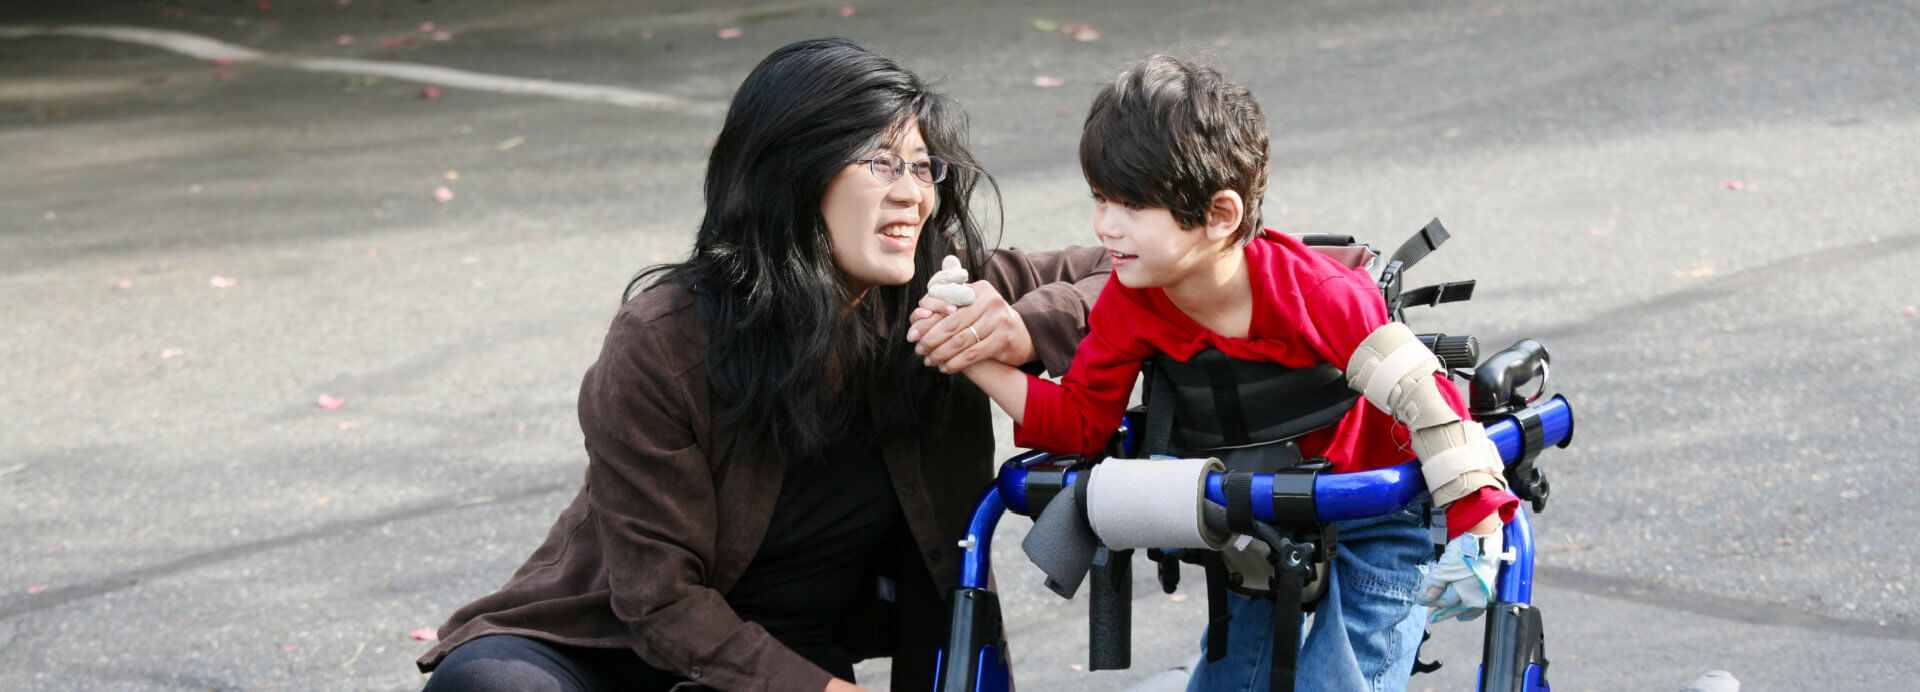 A lady assisting a disable child